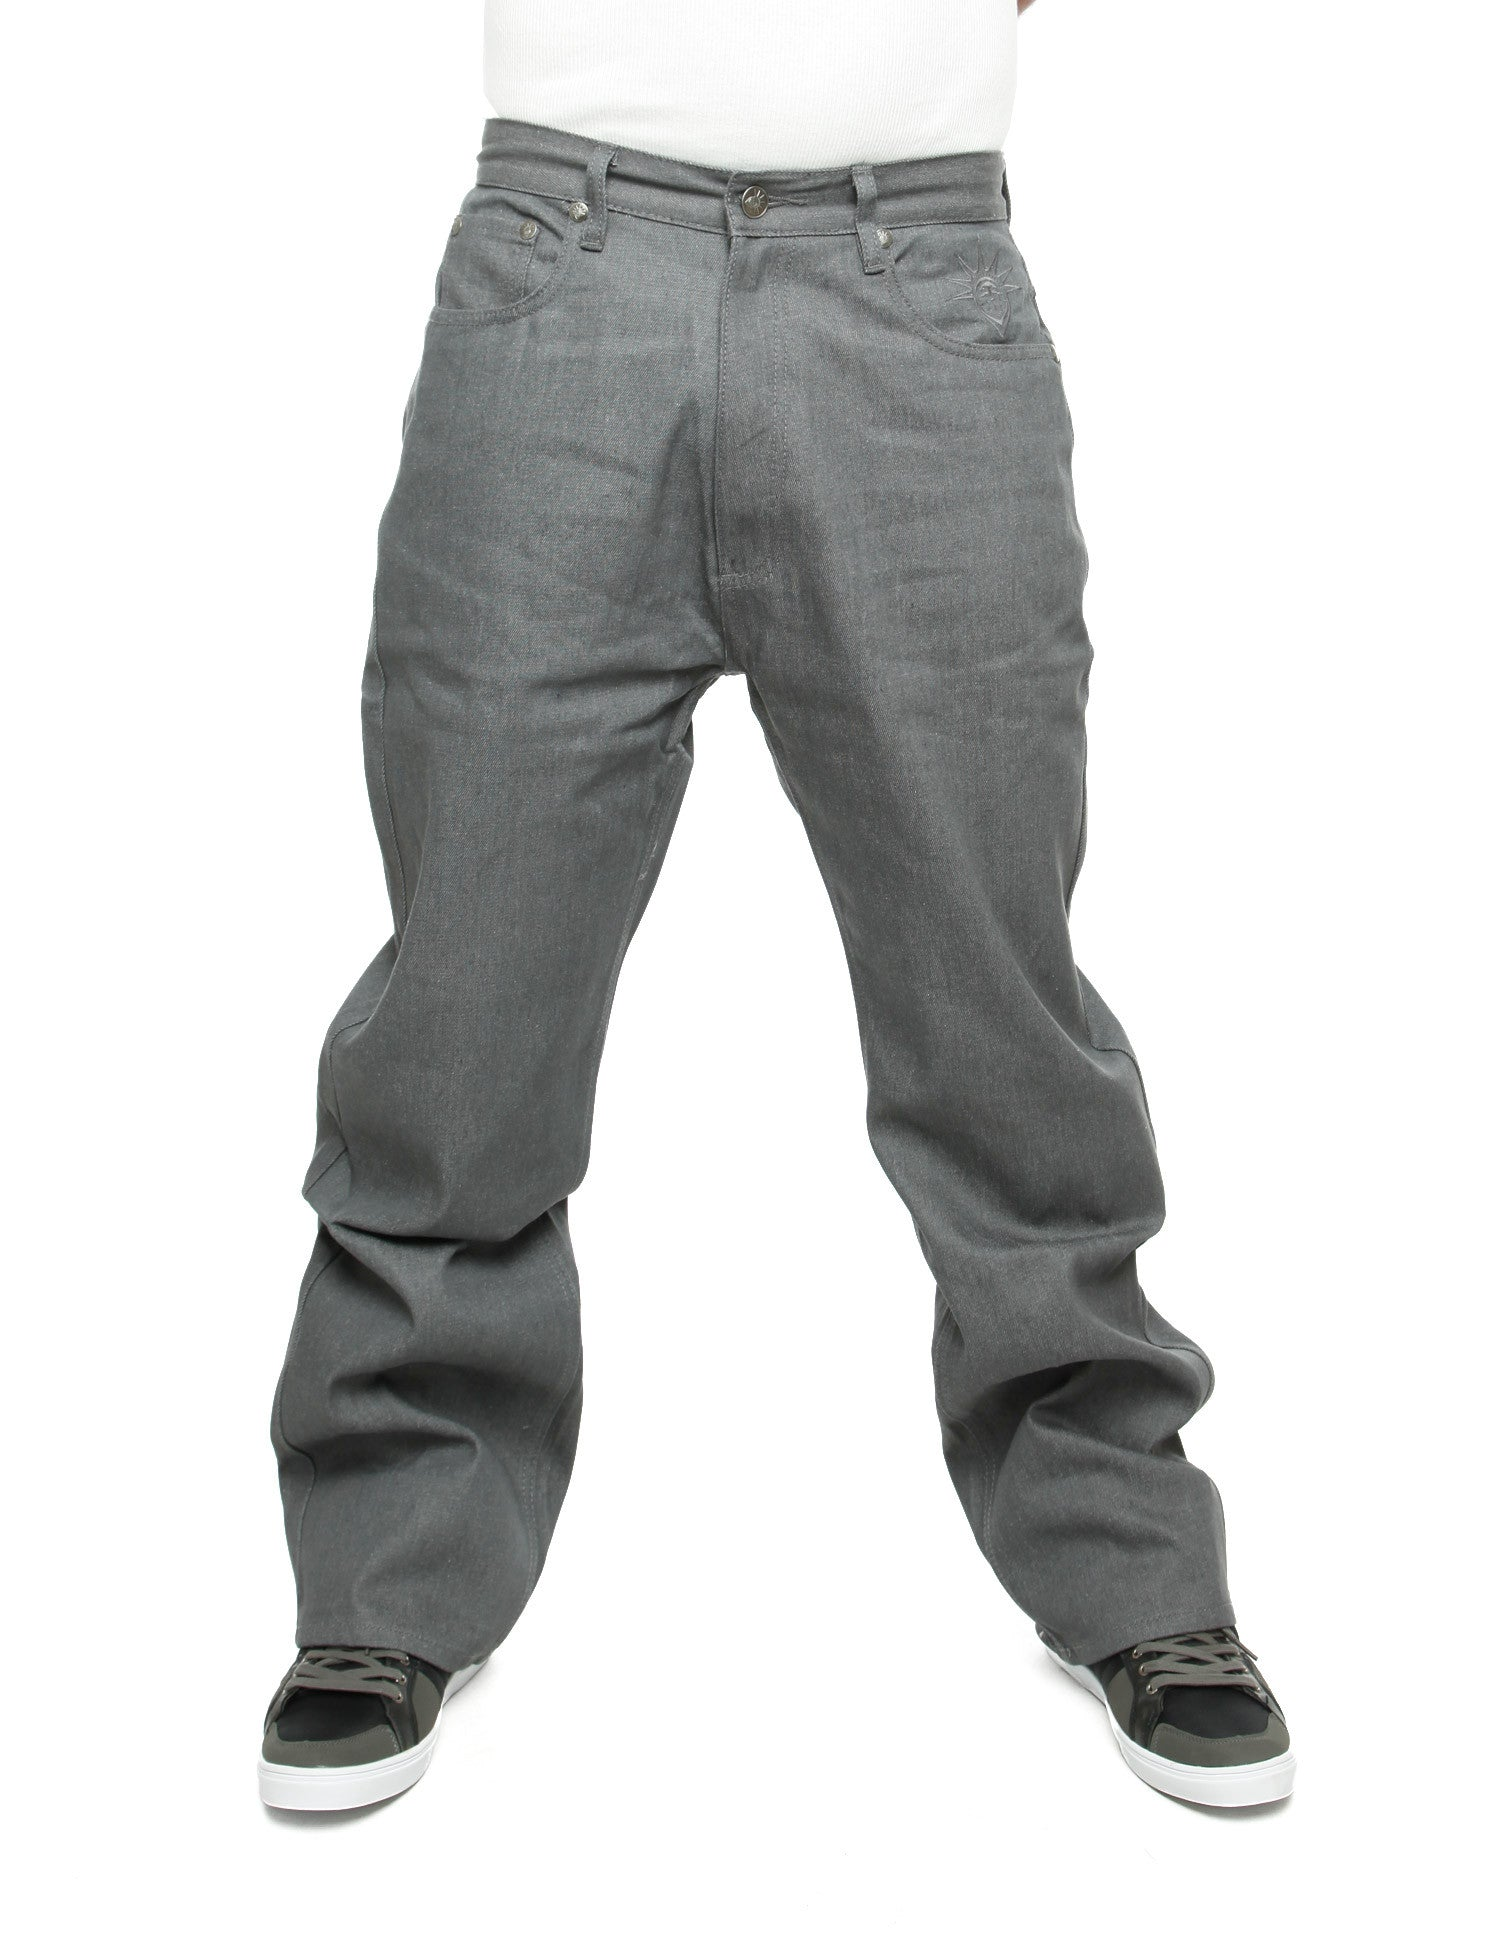 YLD Super Baggy Fit Jeans Raw Grey